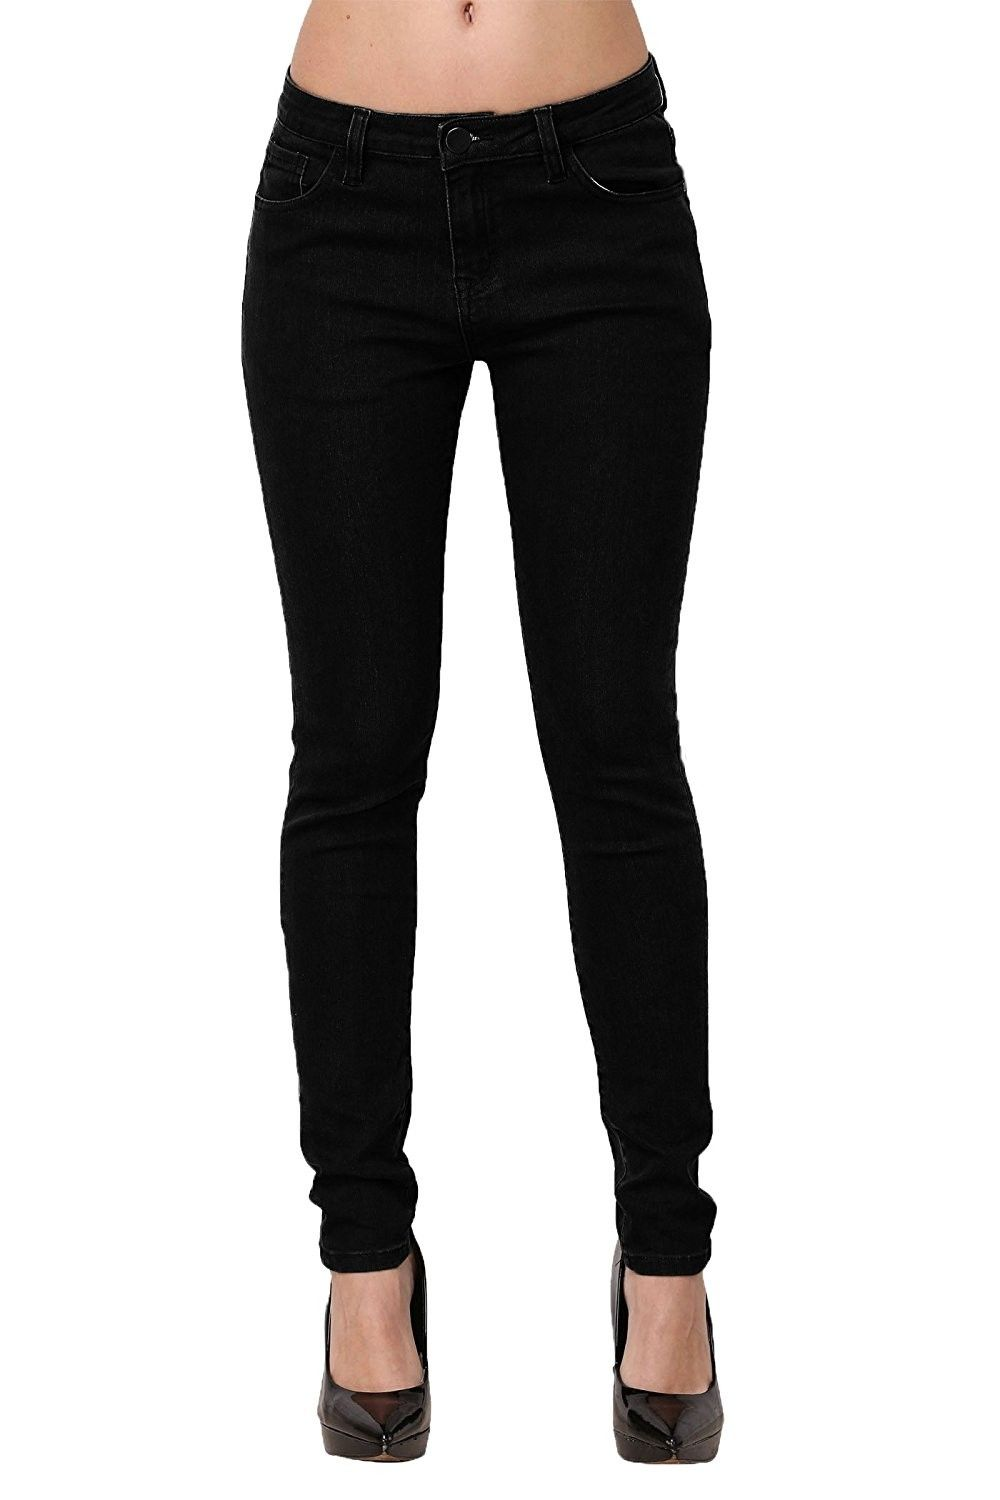 226db317e5 Women's Clothing, Jeans, Skinny Jeans- Women's Casual Butt Lift Stretch  Jeans Leggings - Solid Black - C317Z5ZGYTD #fashion #Jeans #women #outfits # pants